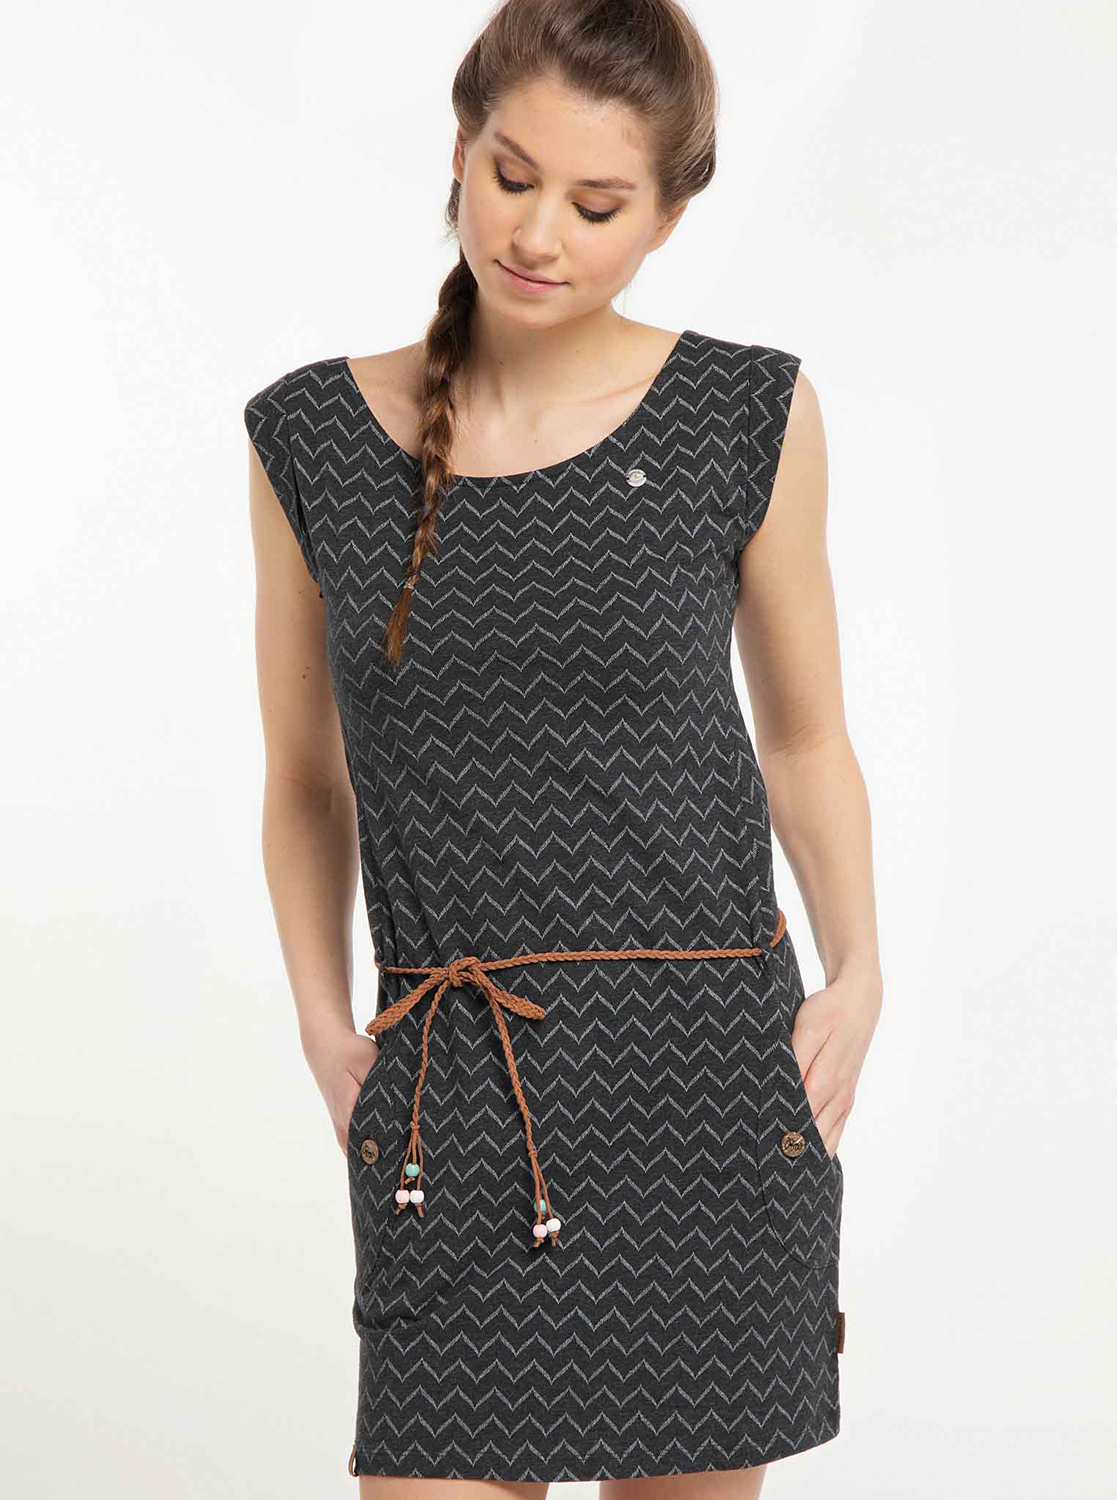 Ragwear black dress patterned